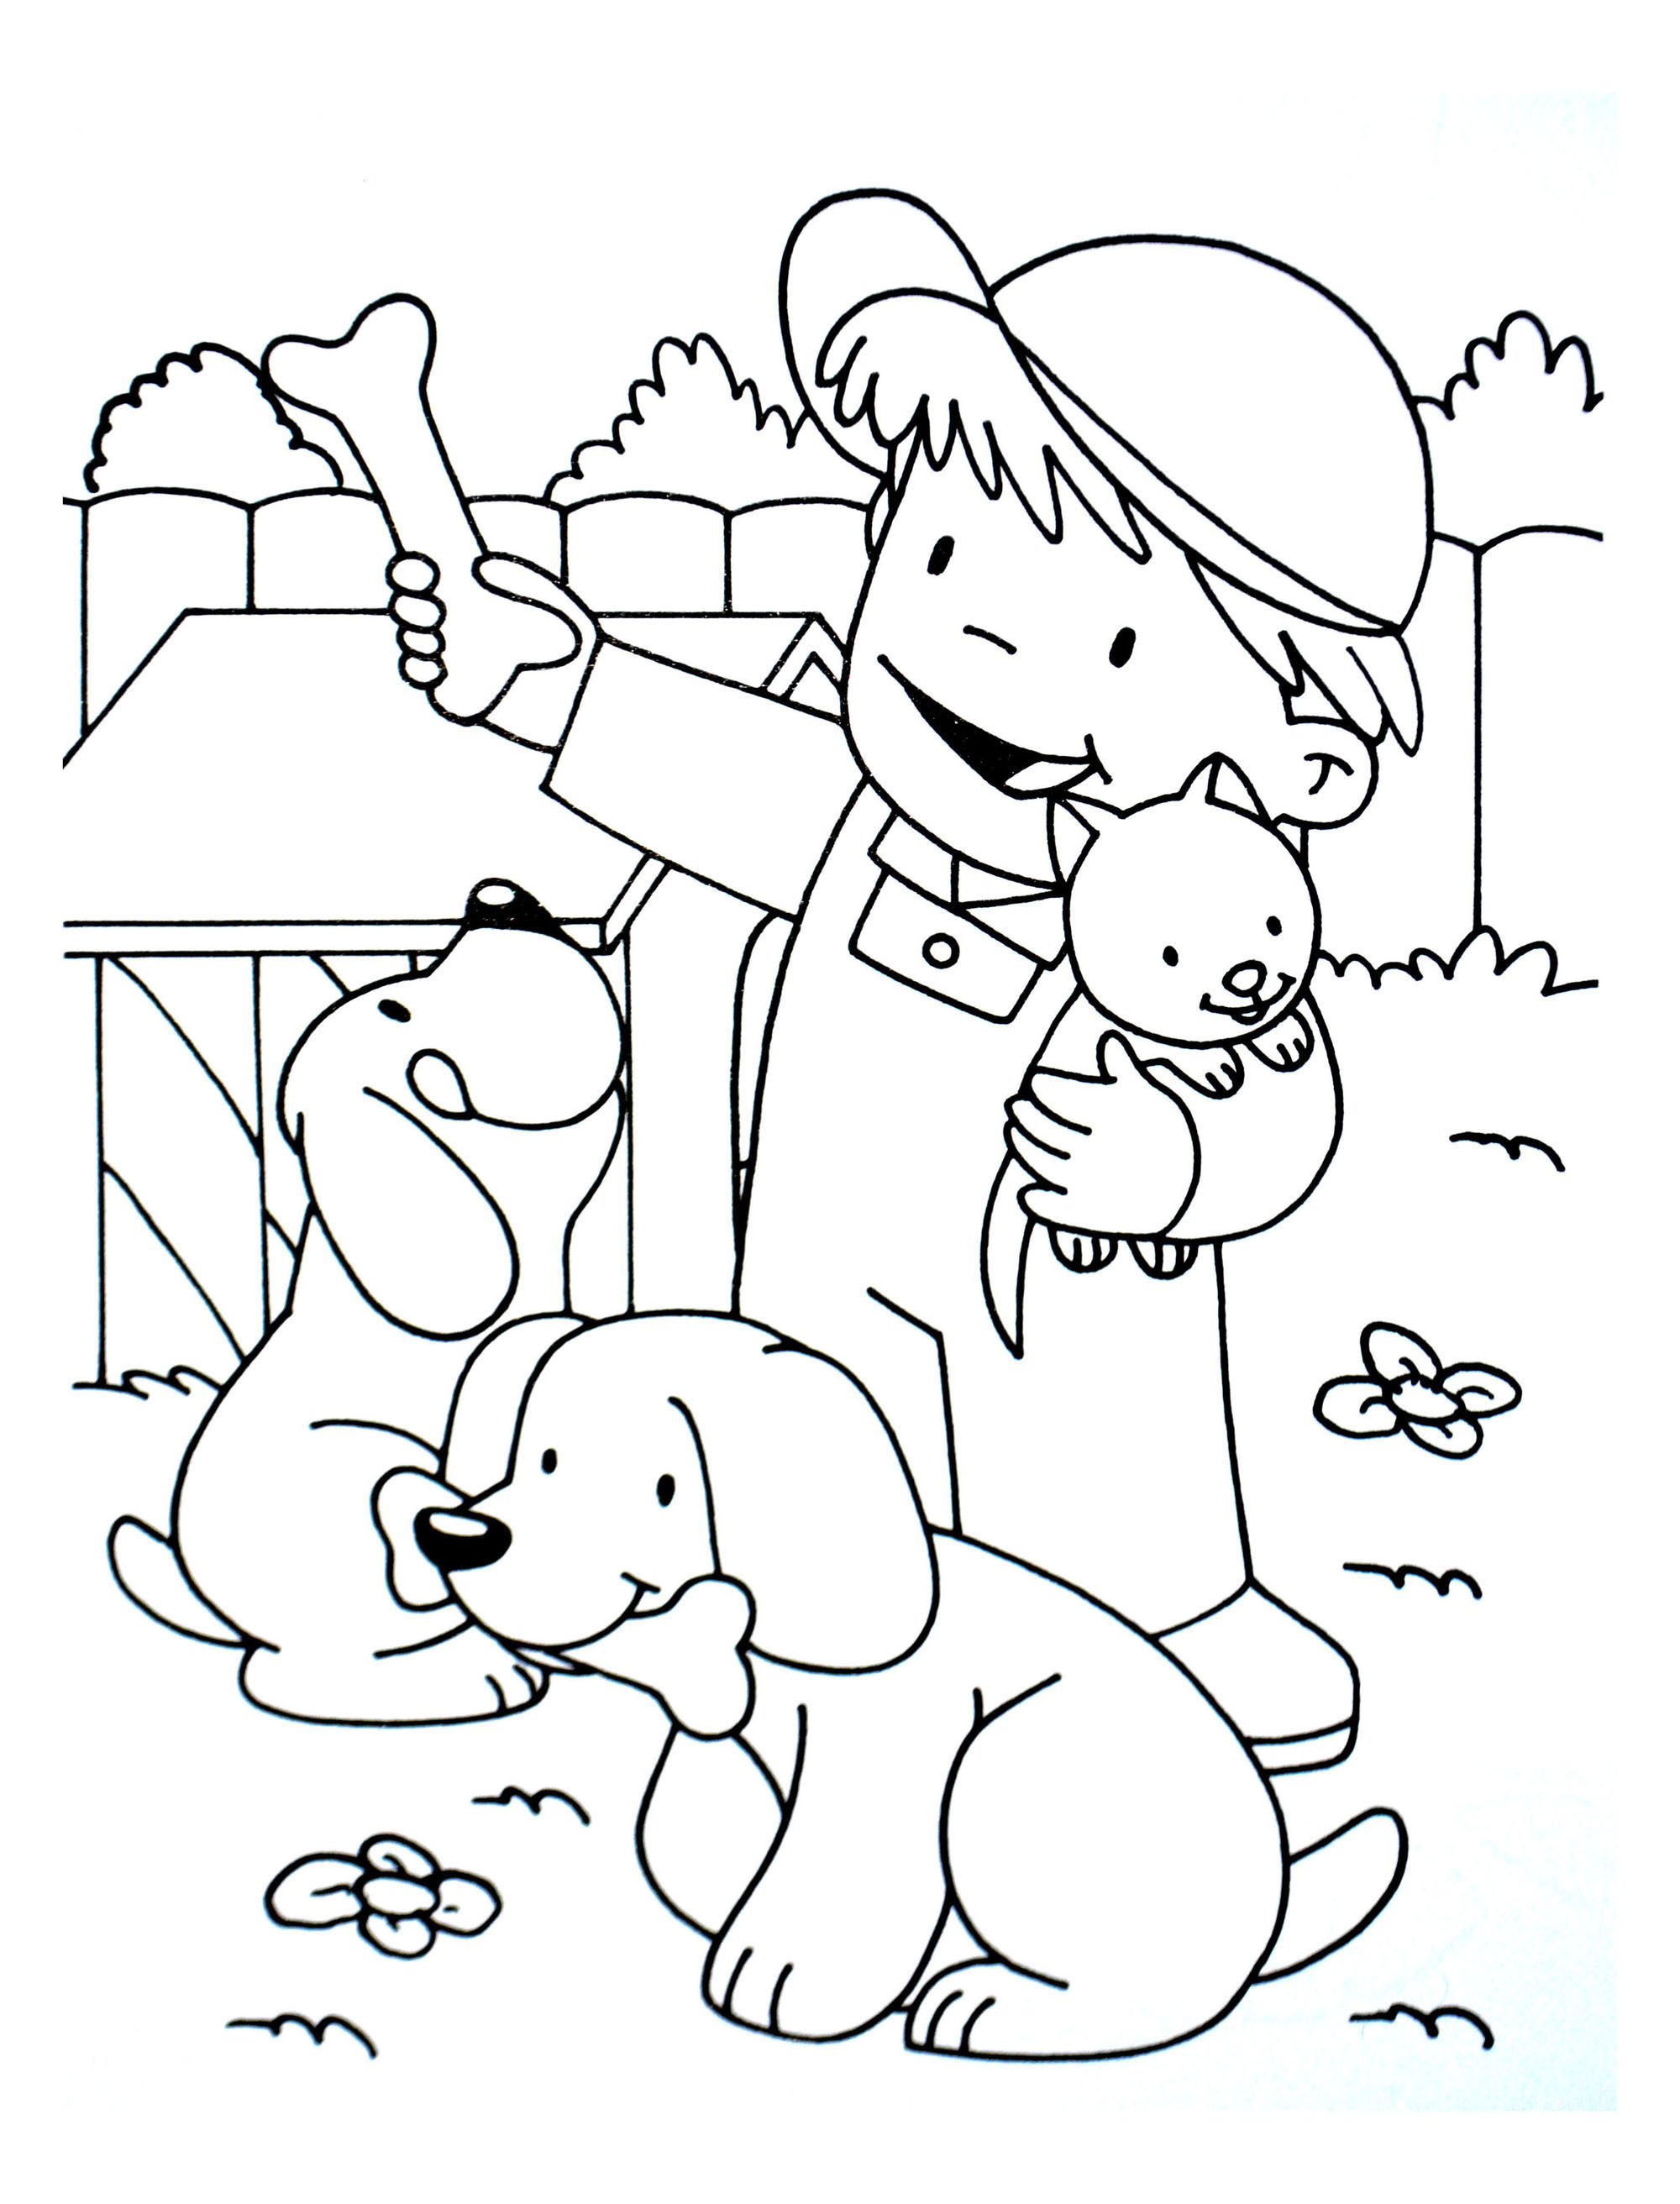 Dog To Color For Children